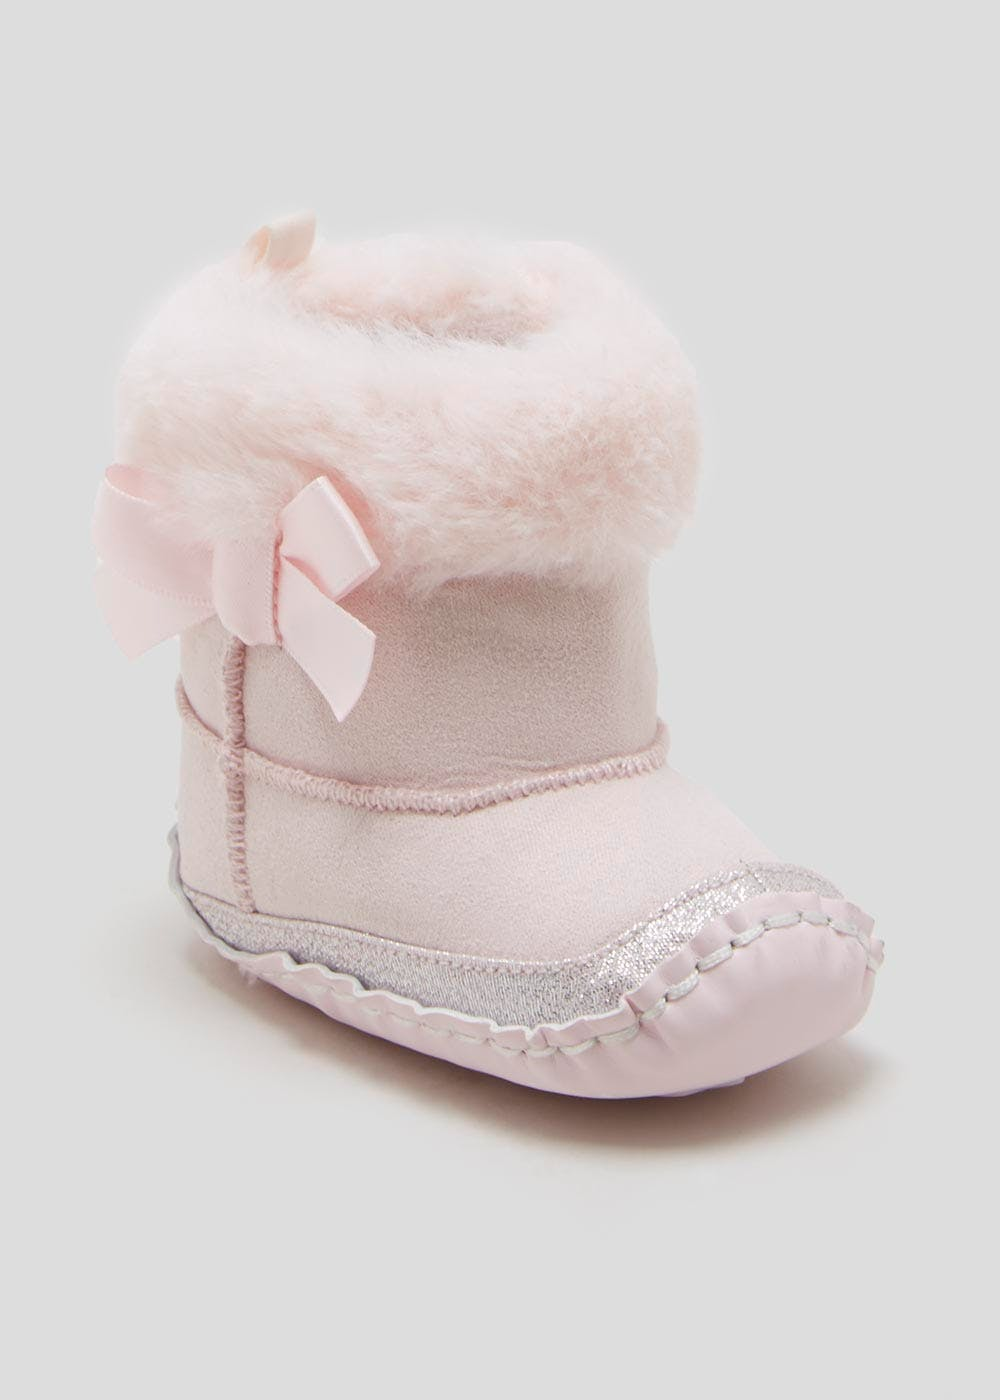 Girls Pink Soft Sole Baby Boots